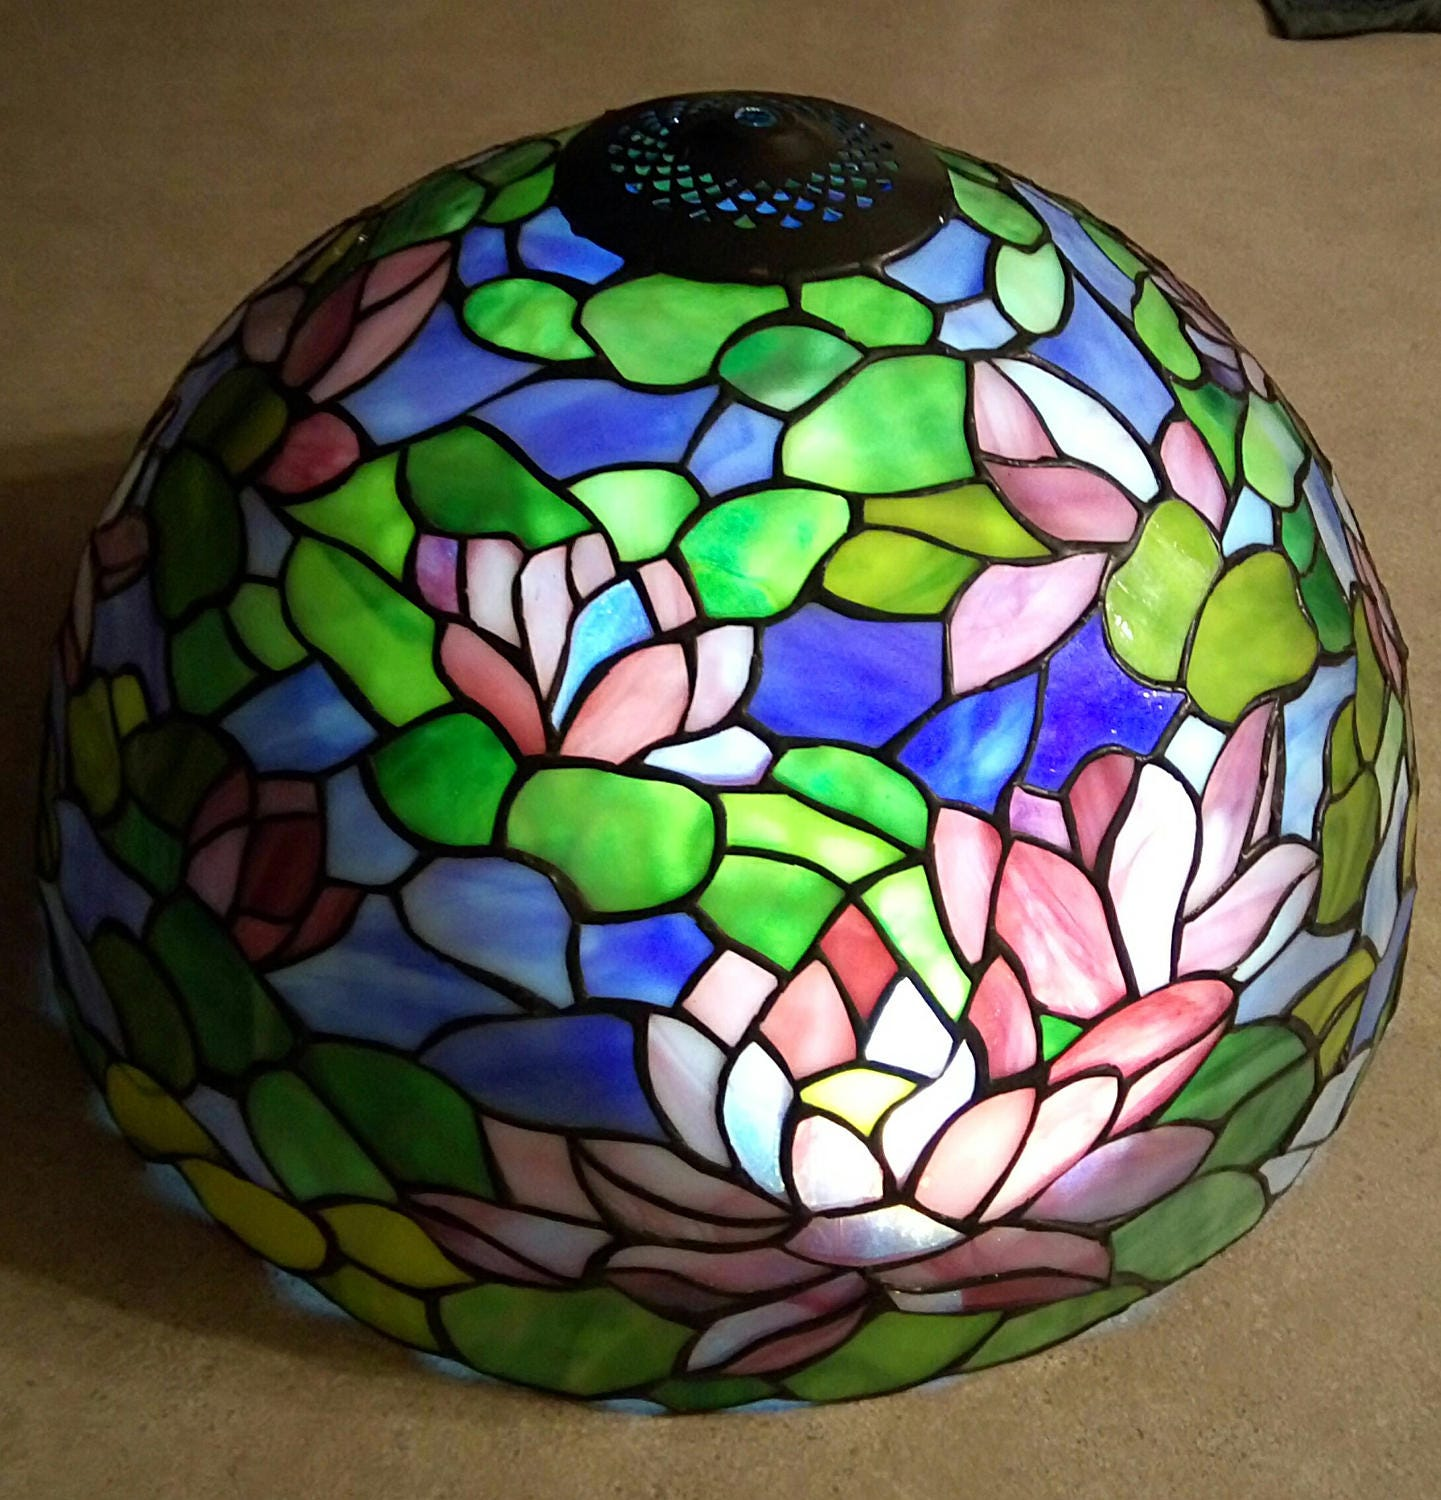 Massive Rare Vintage Chicago Mosaic Tiffany Style Stained